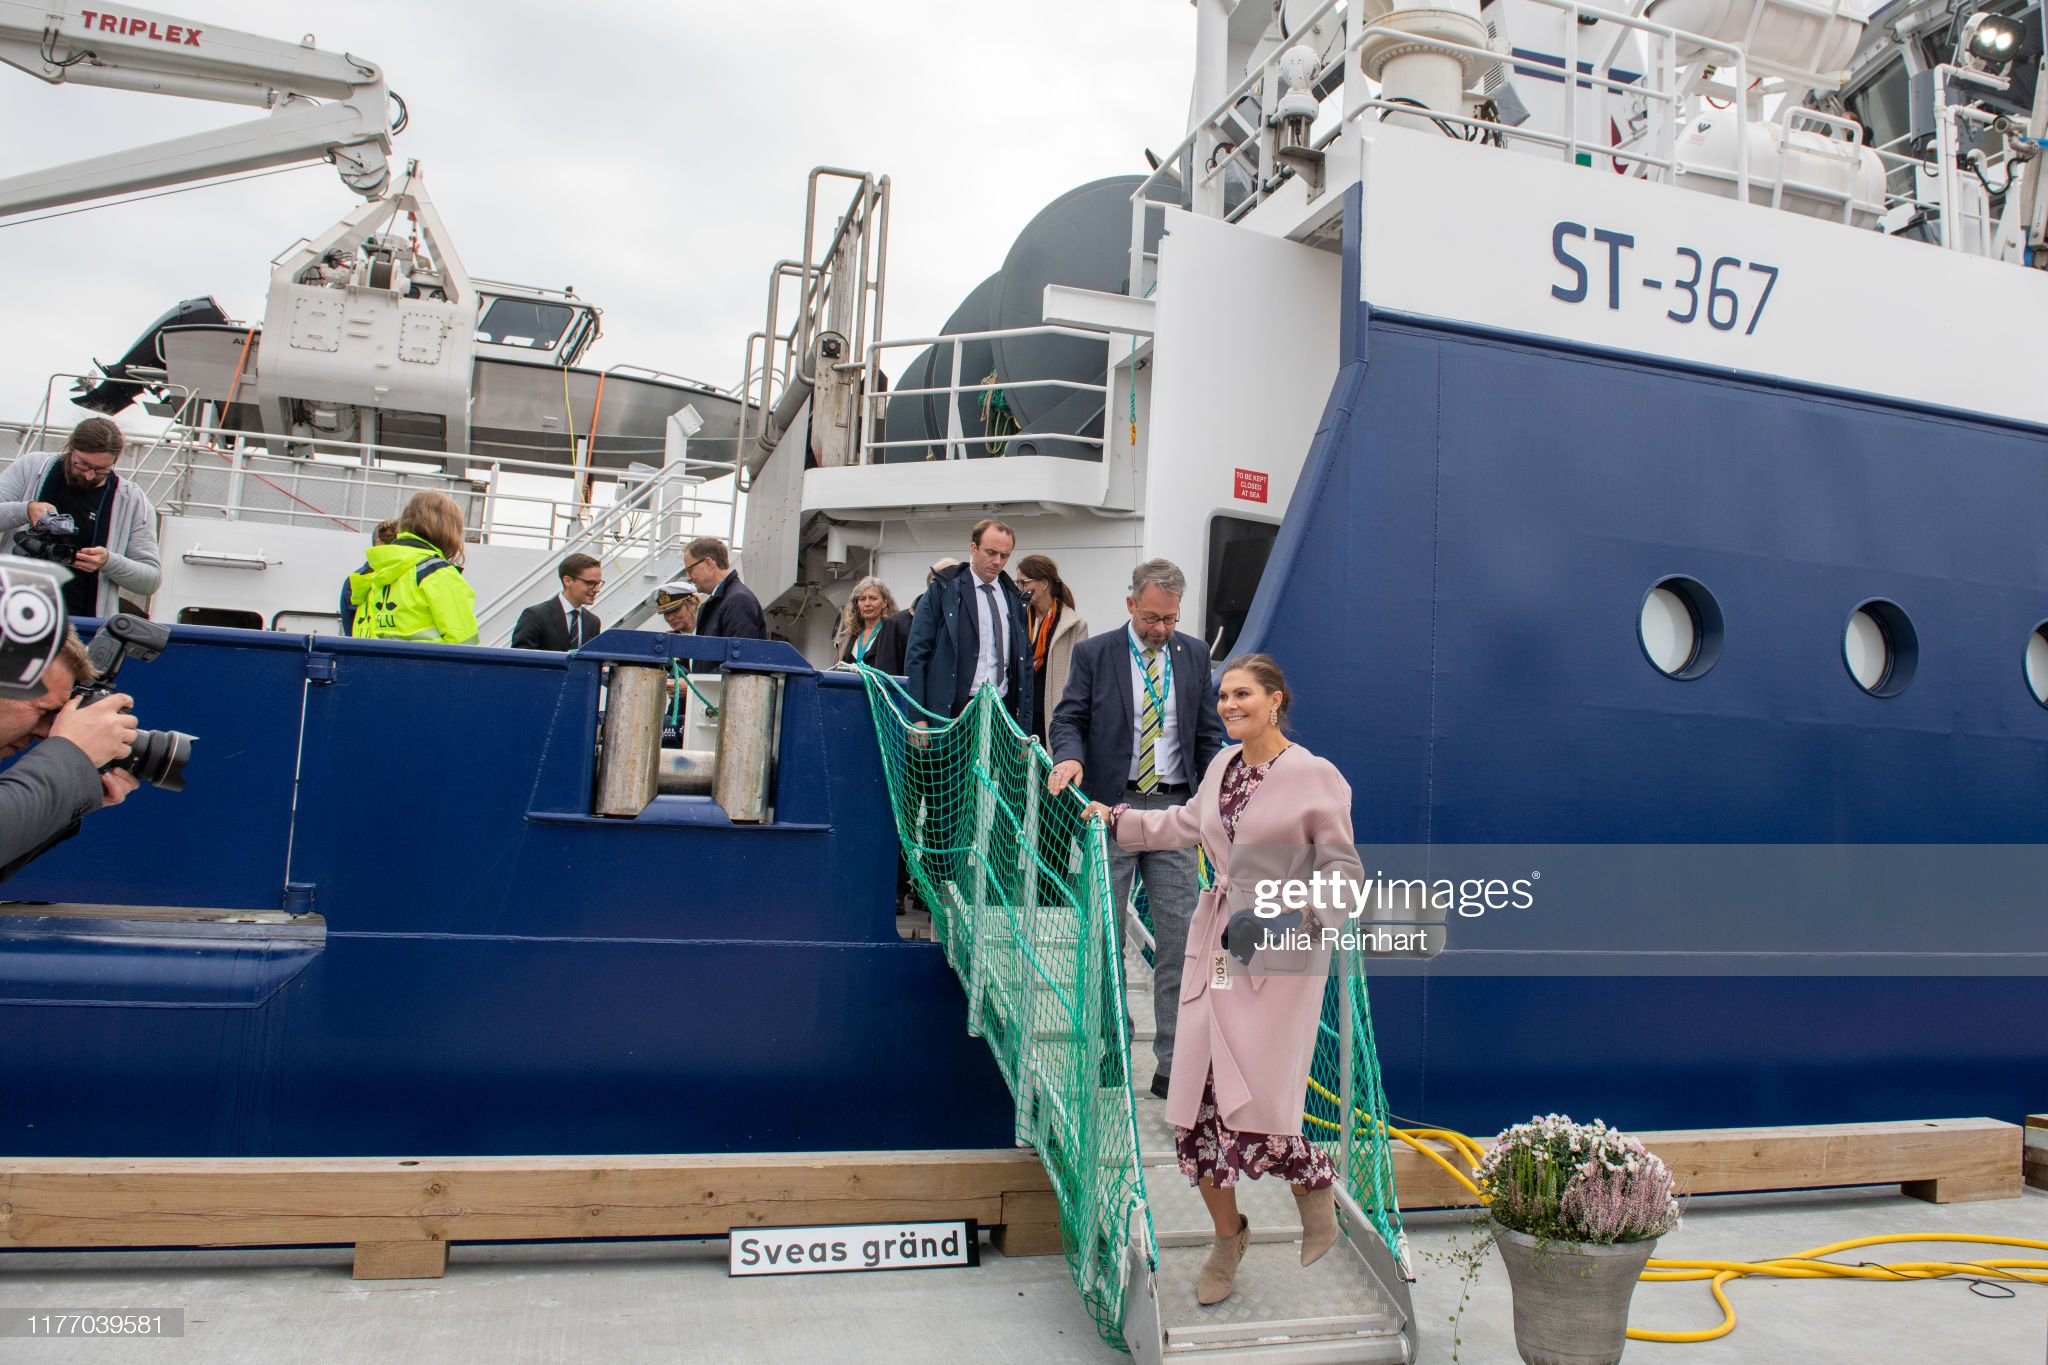 crown-princess-victoria-leaves-the-newly-christened-research-ship-at-picture-id1177039581